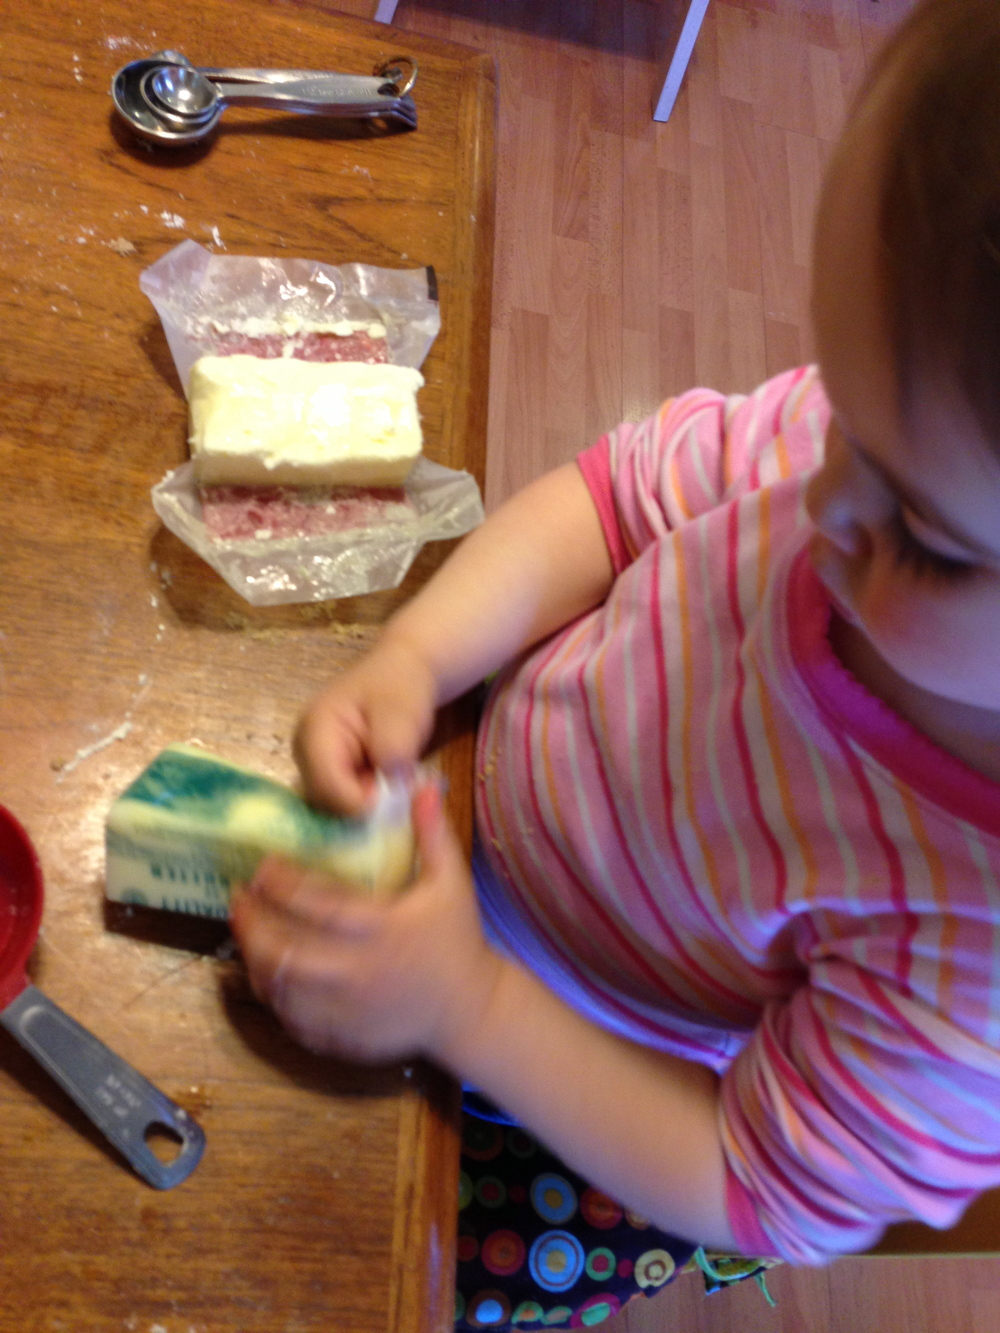 Unwrapping the butter stick gives my daughter such joy. I think she feels it is a grown-up task, and it clearly indicates I am up for a mess.